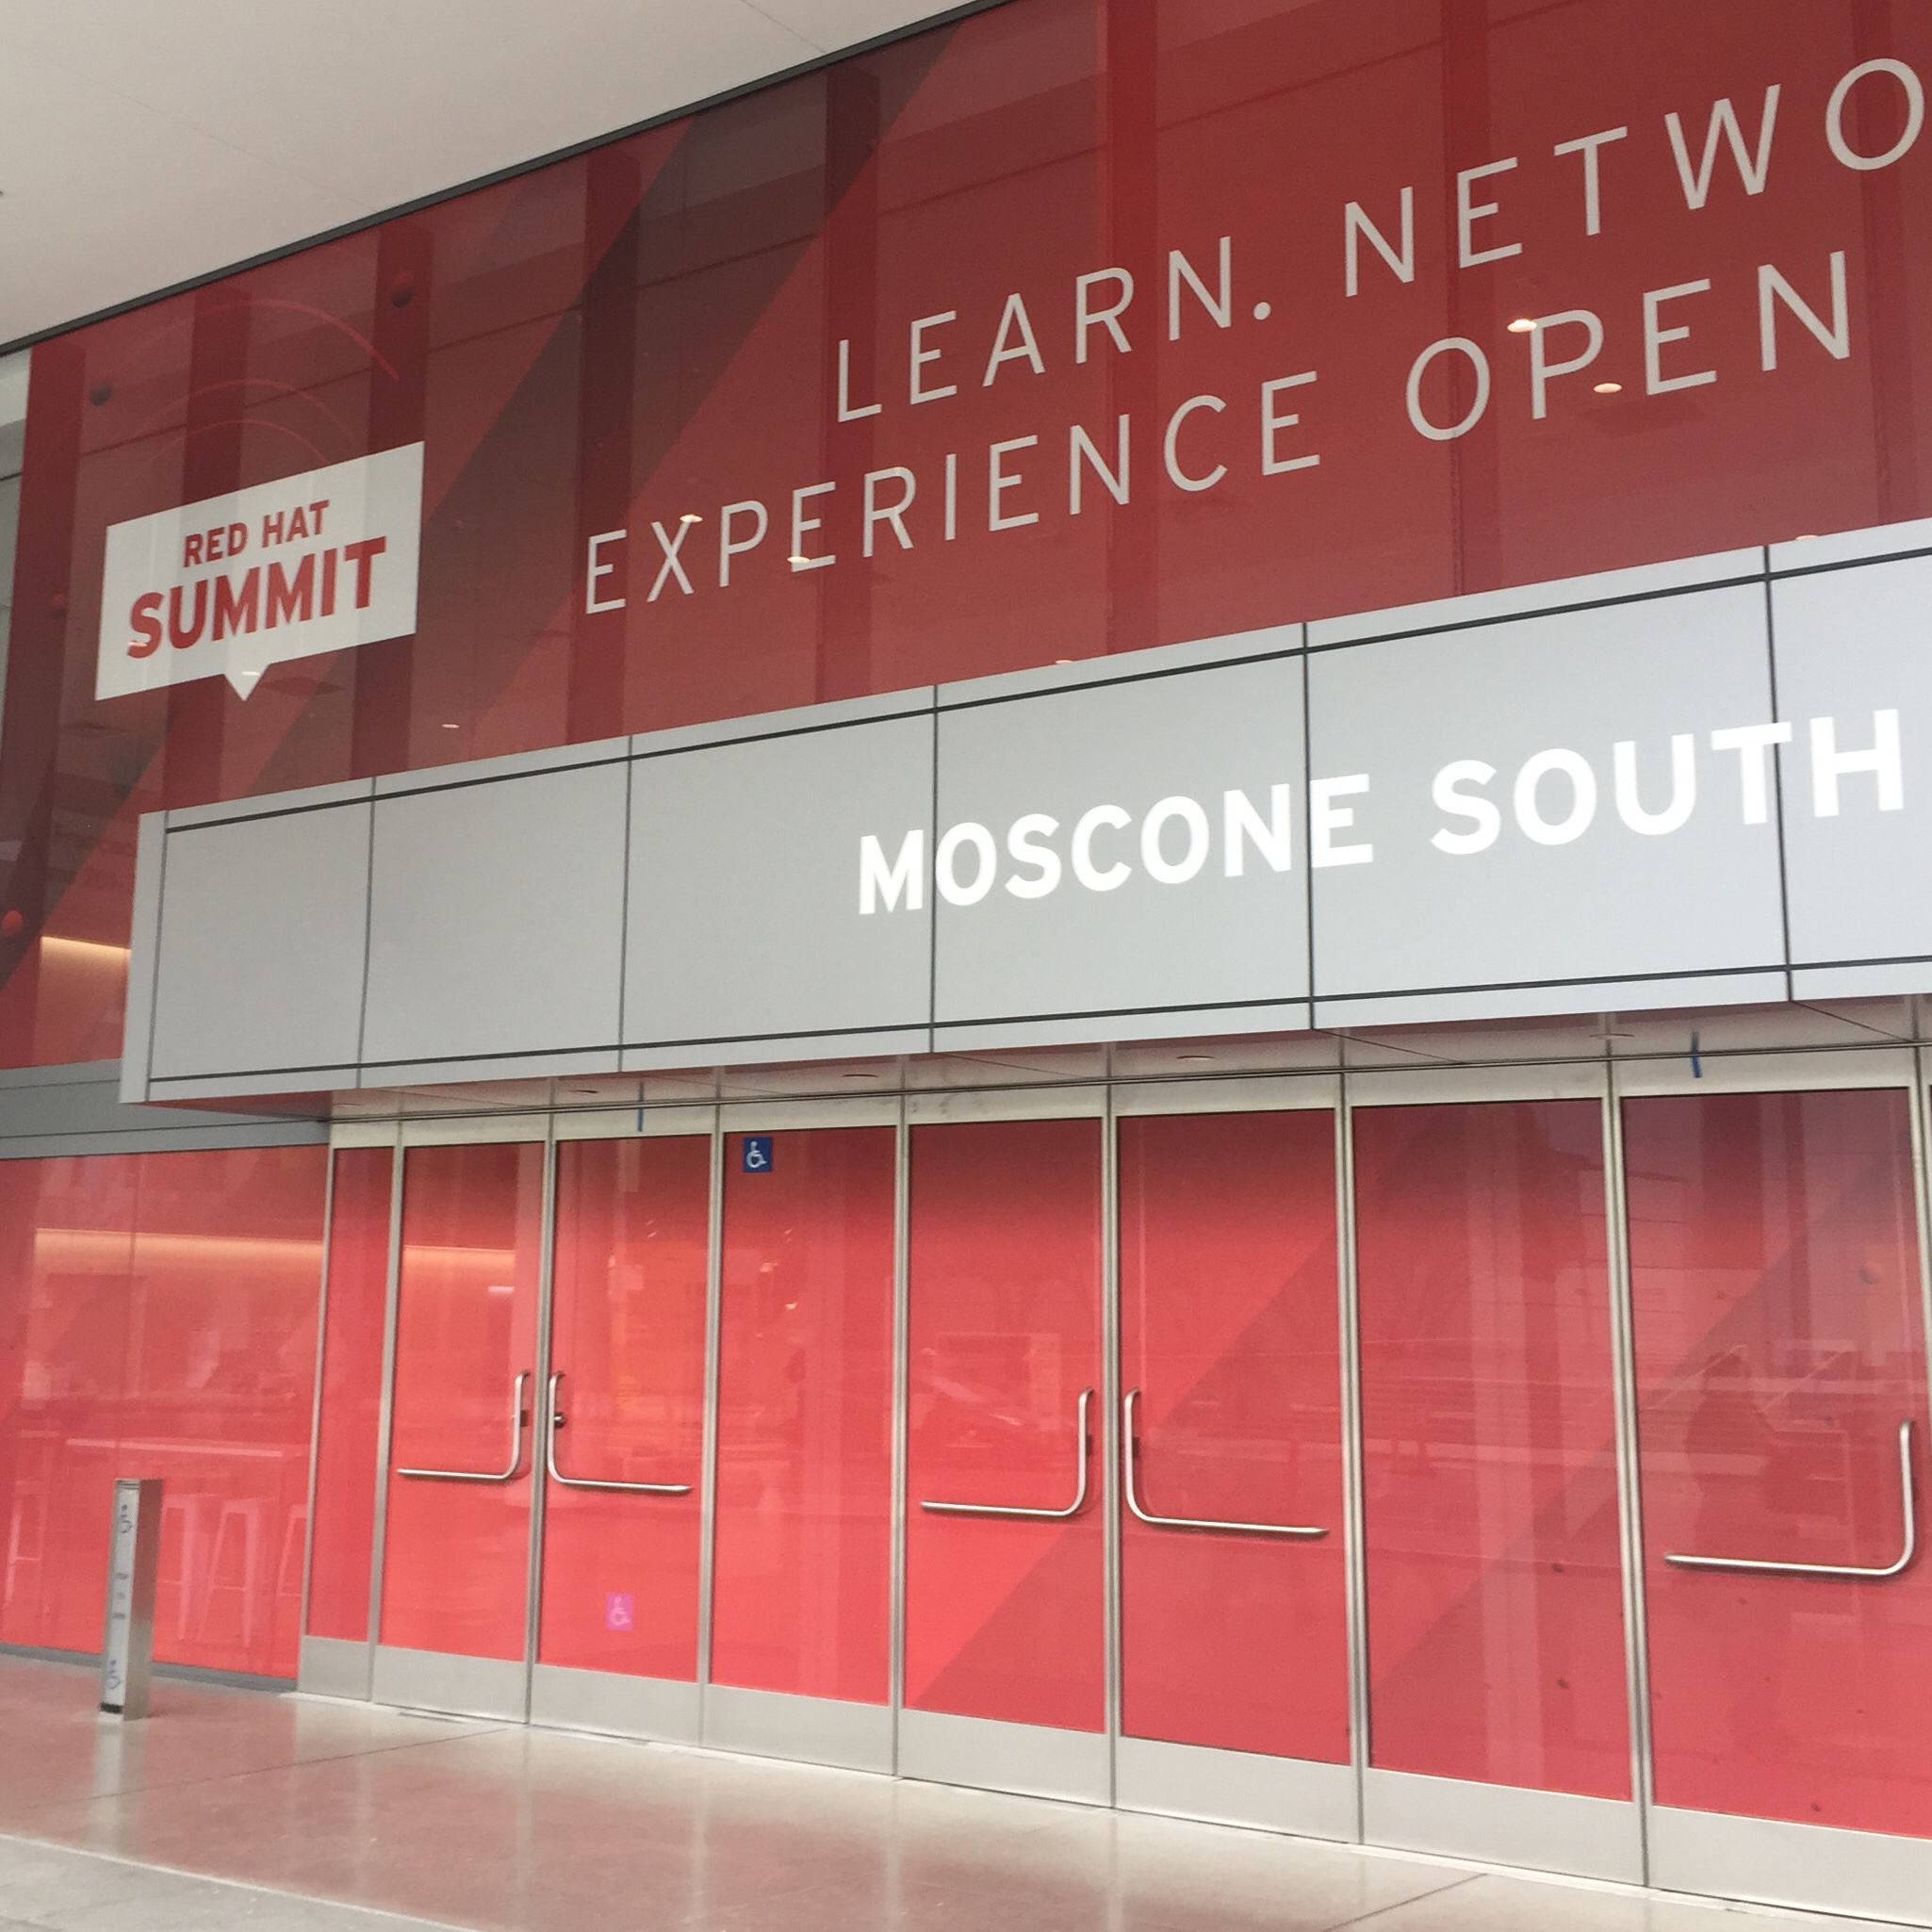 Red Hat Summit signage at Moscone South